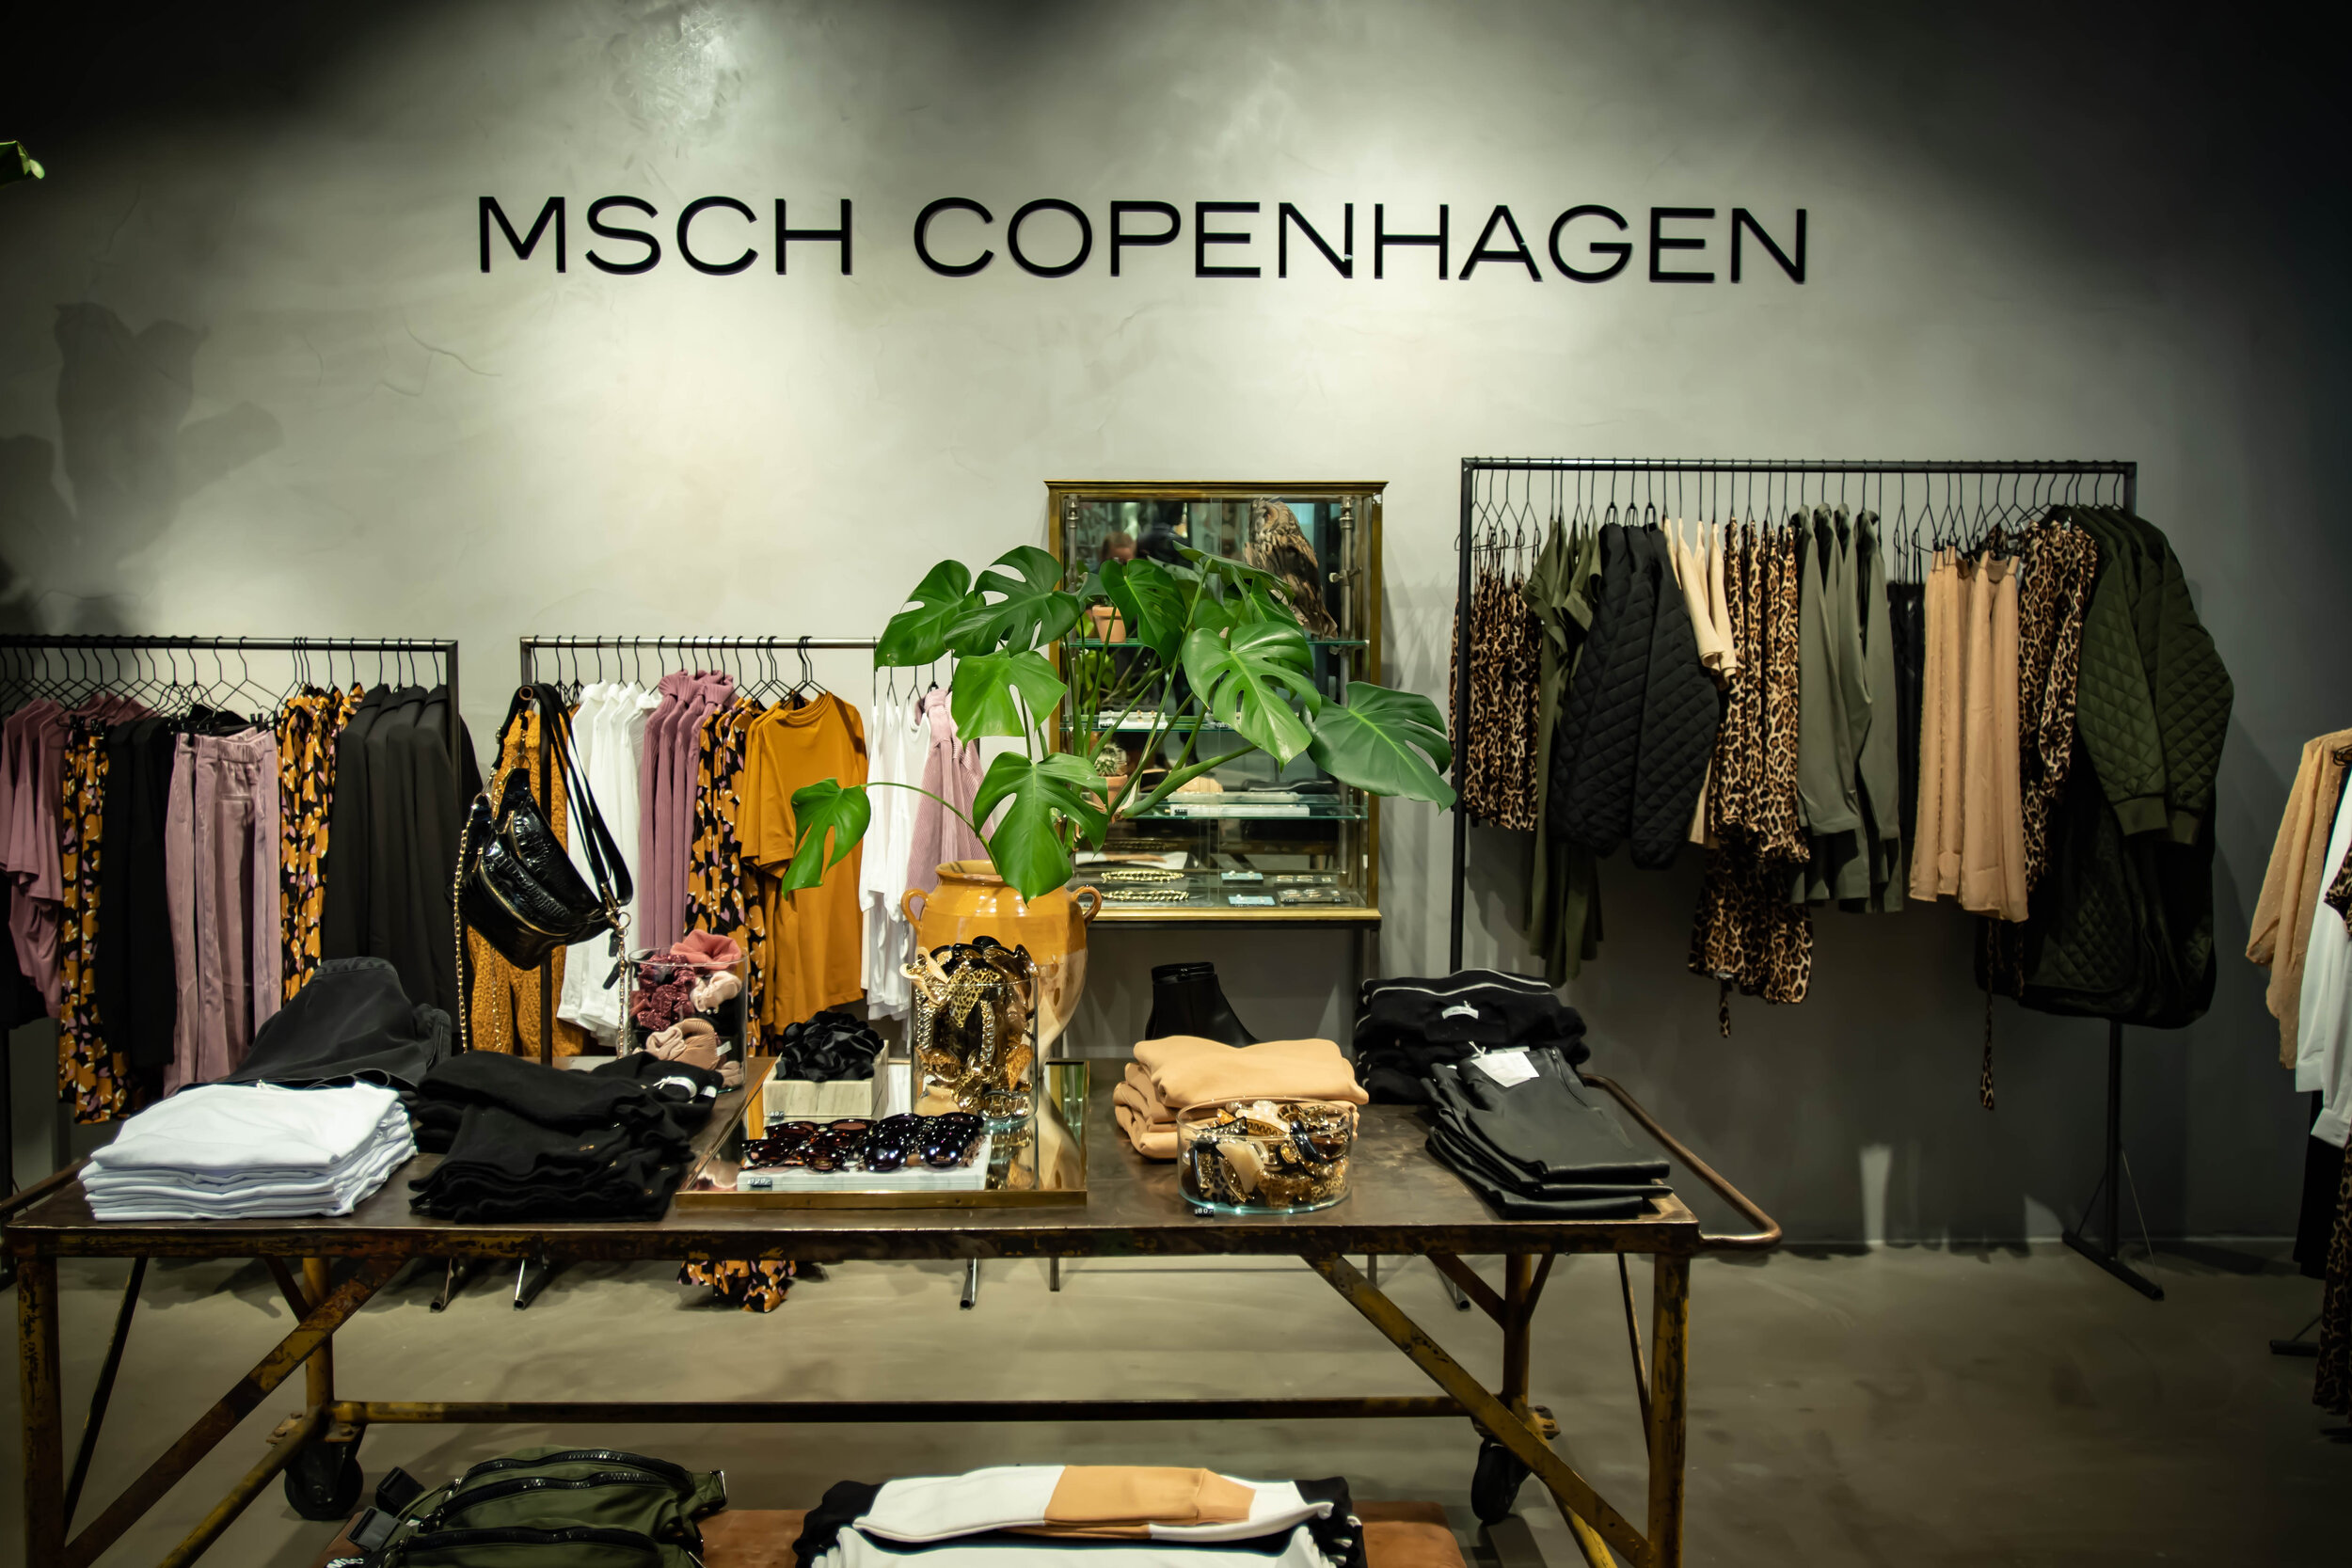 Copenhagen shopping is a great experience.